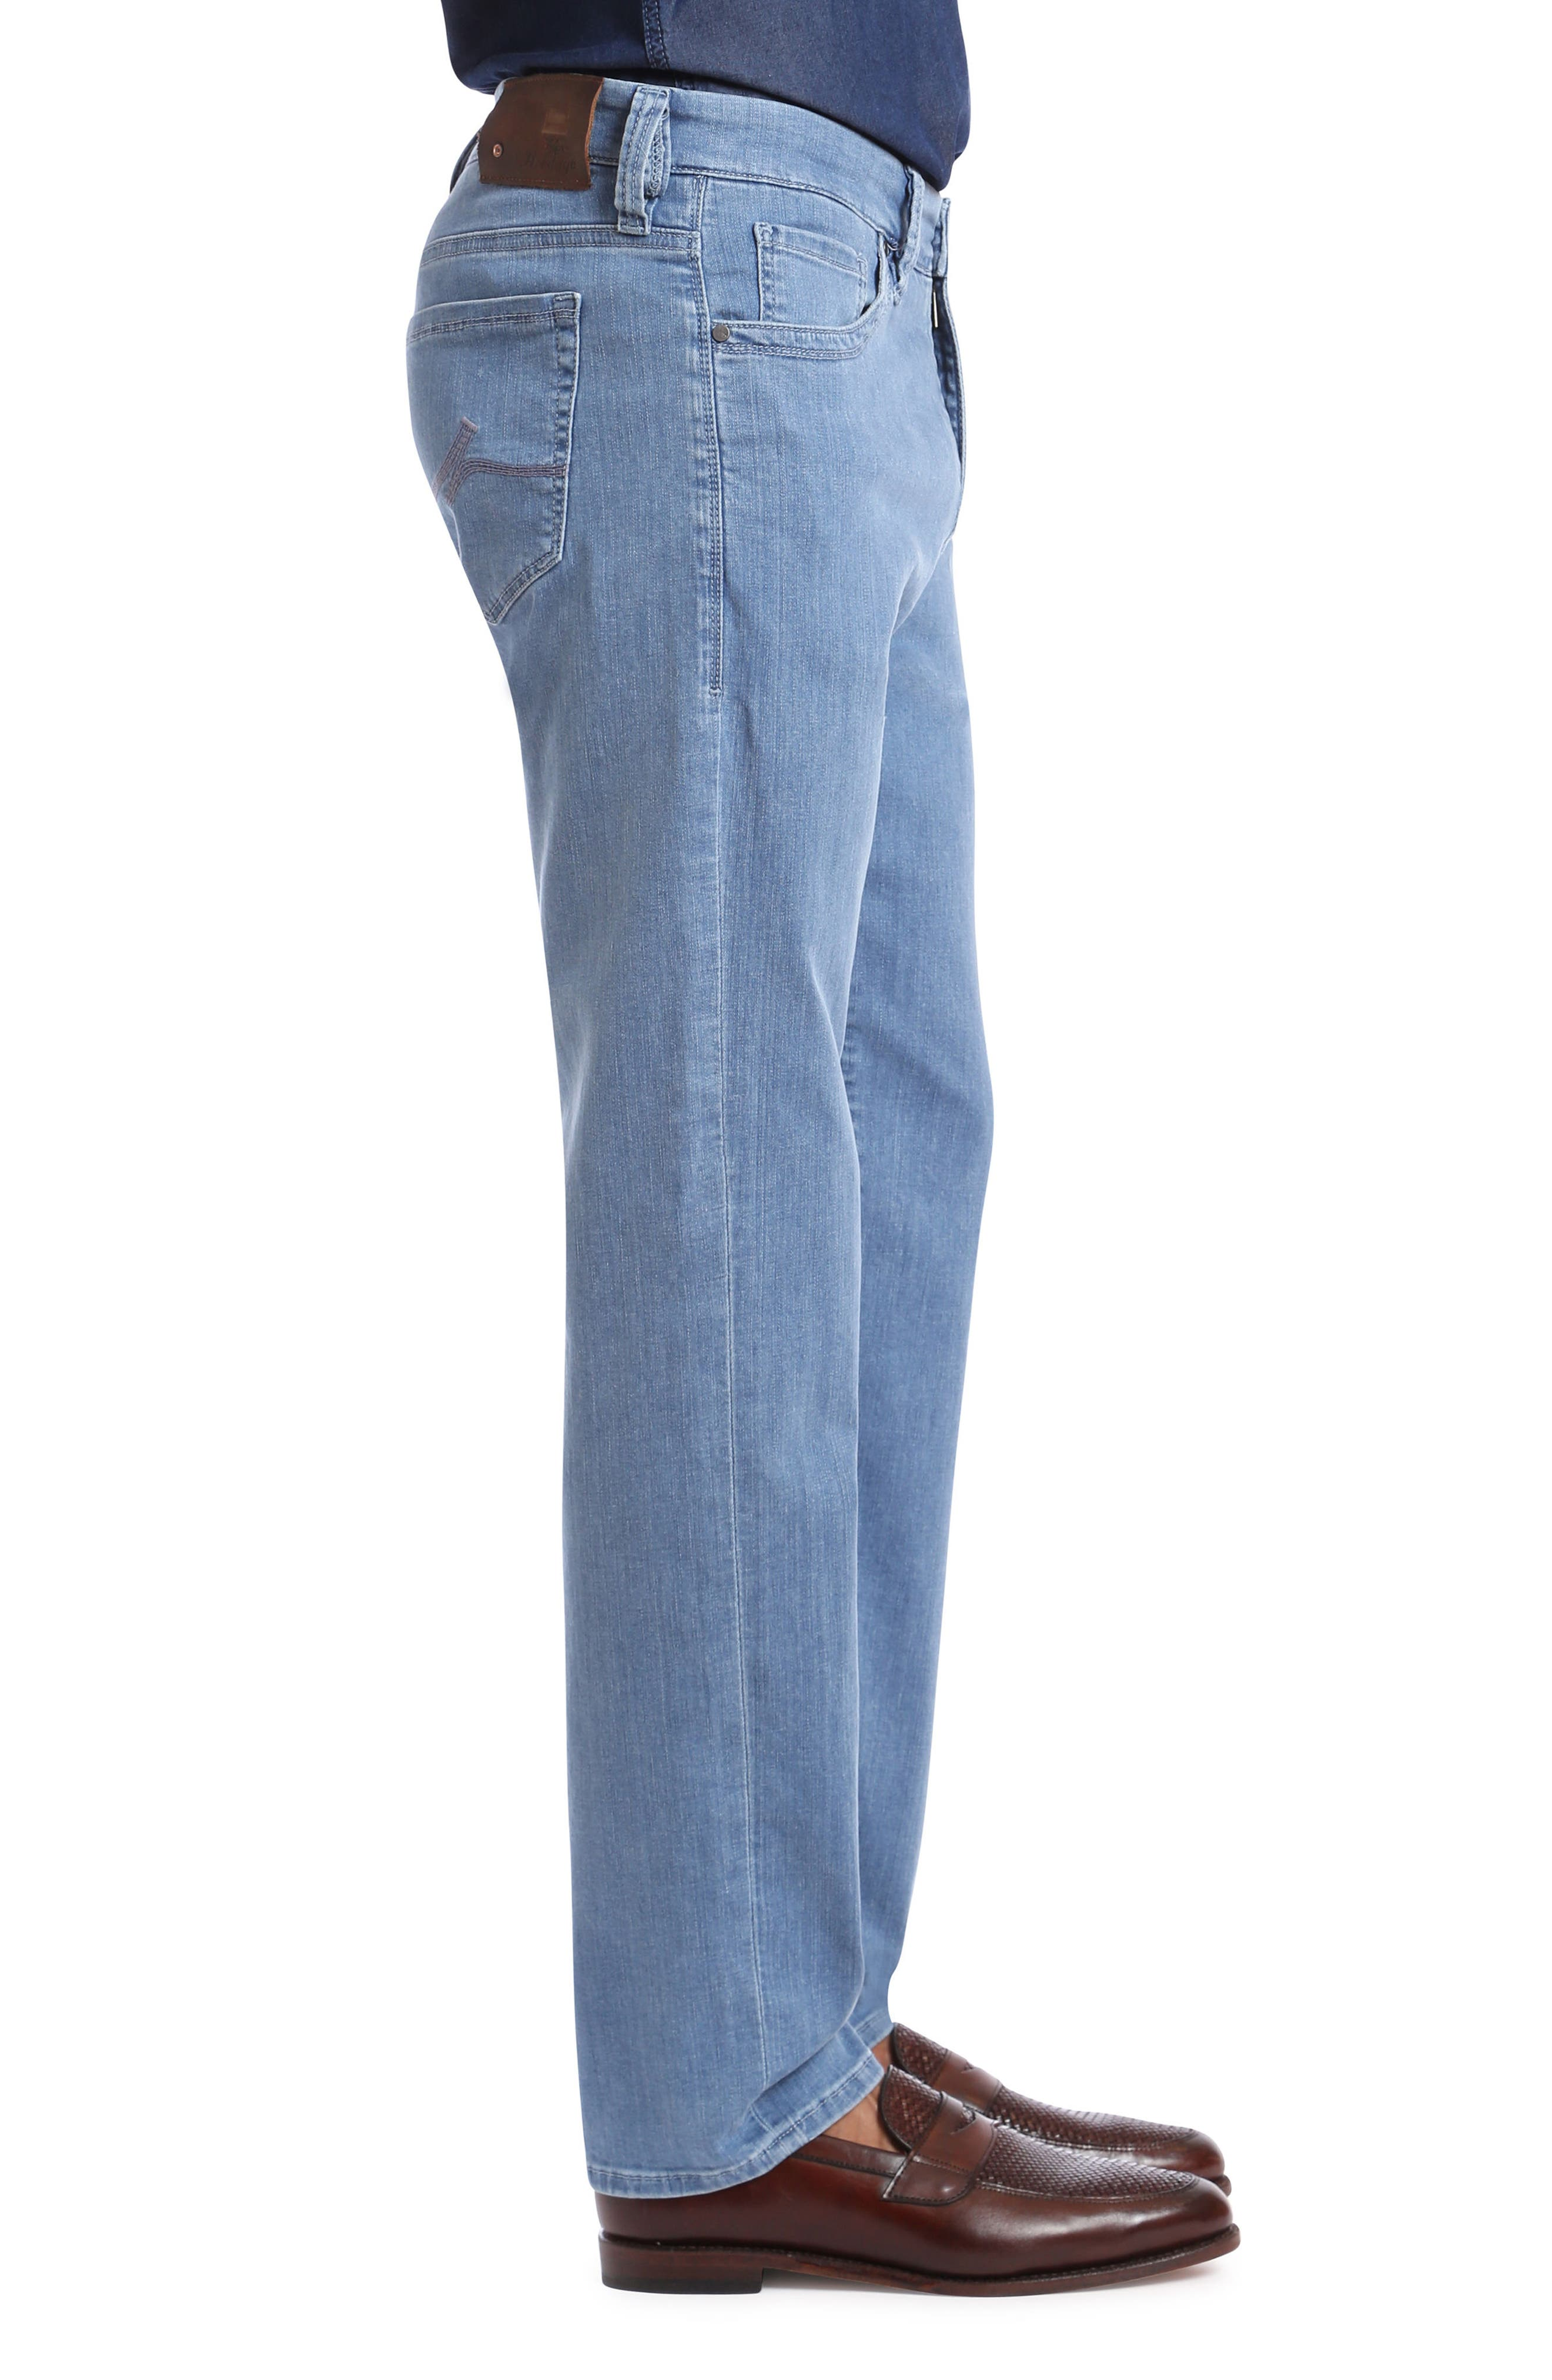 Charisma Relaxed Fit jeans,                             Alternate thumbnail 3, color,                             420